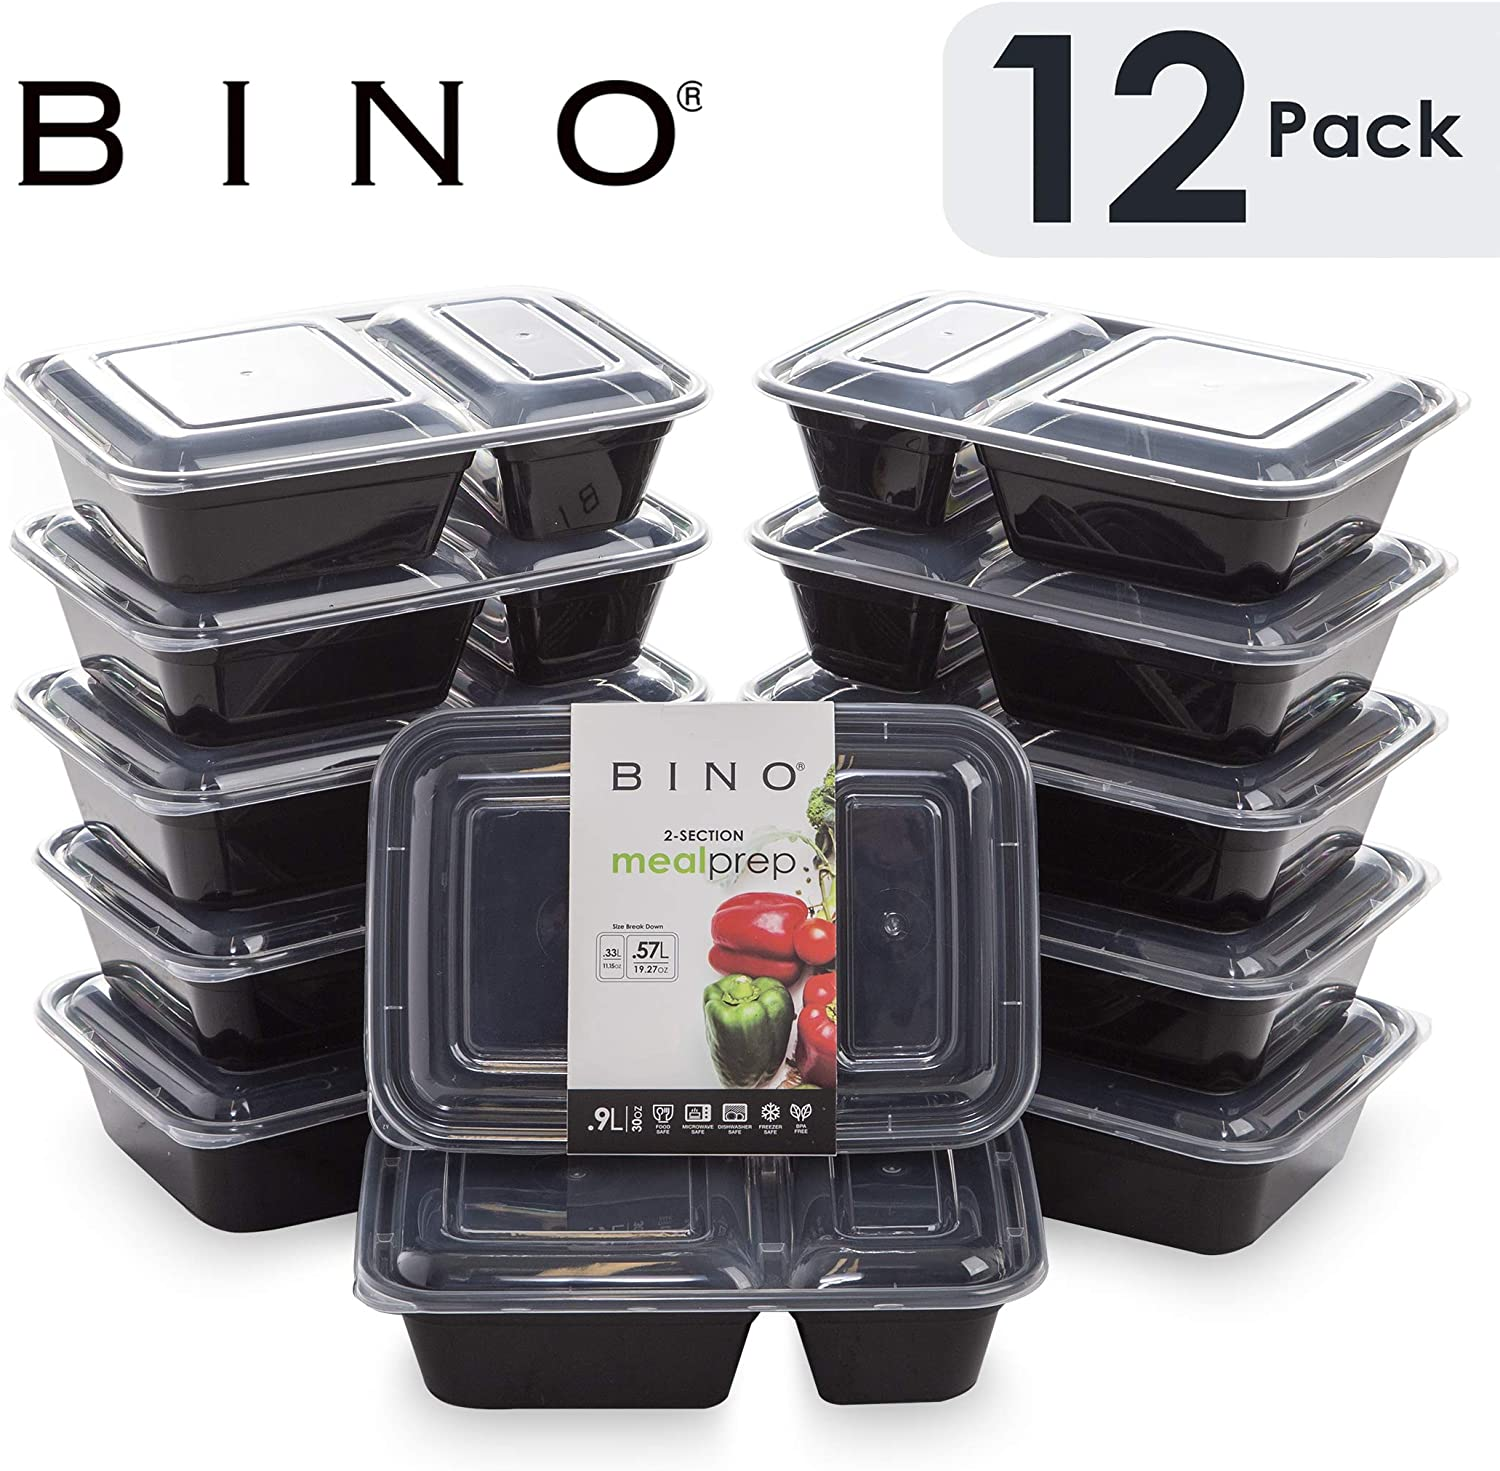 BINO Meal Prep Containers with Lids - 2 Compartment /30 oz [12-Pack], Black - Bento Box Lunch Containers for Adults Food Containers Meal Prep Food Prep Containers Tupperware Set